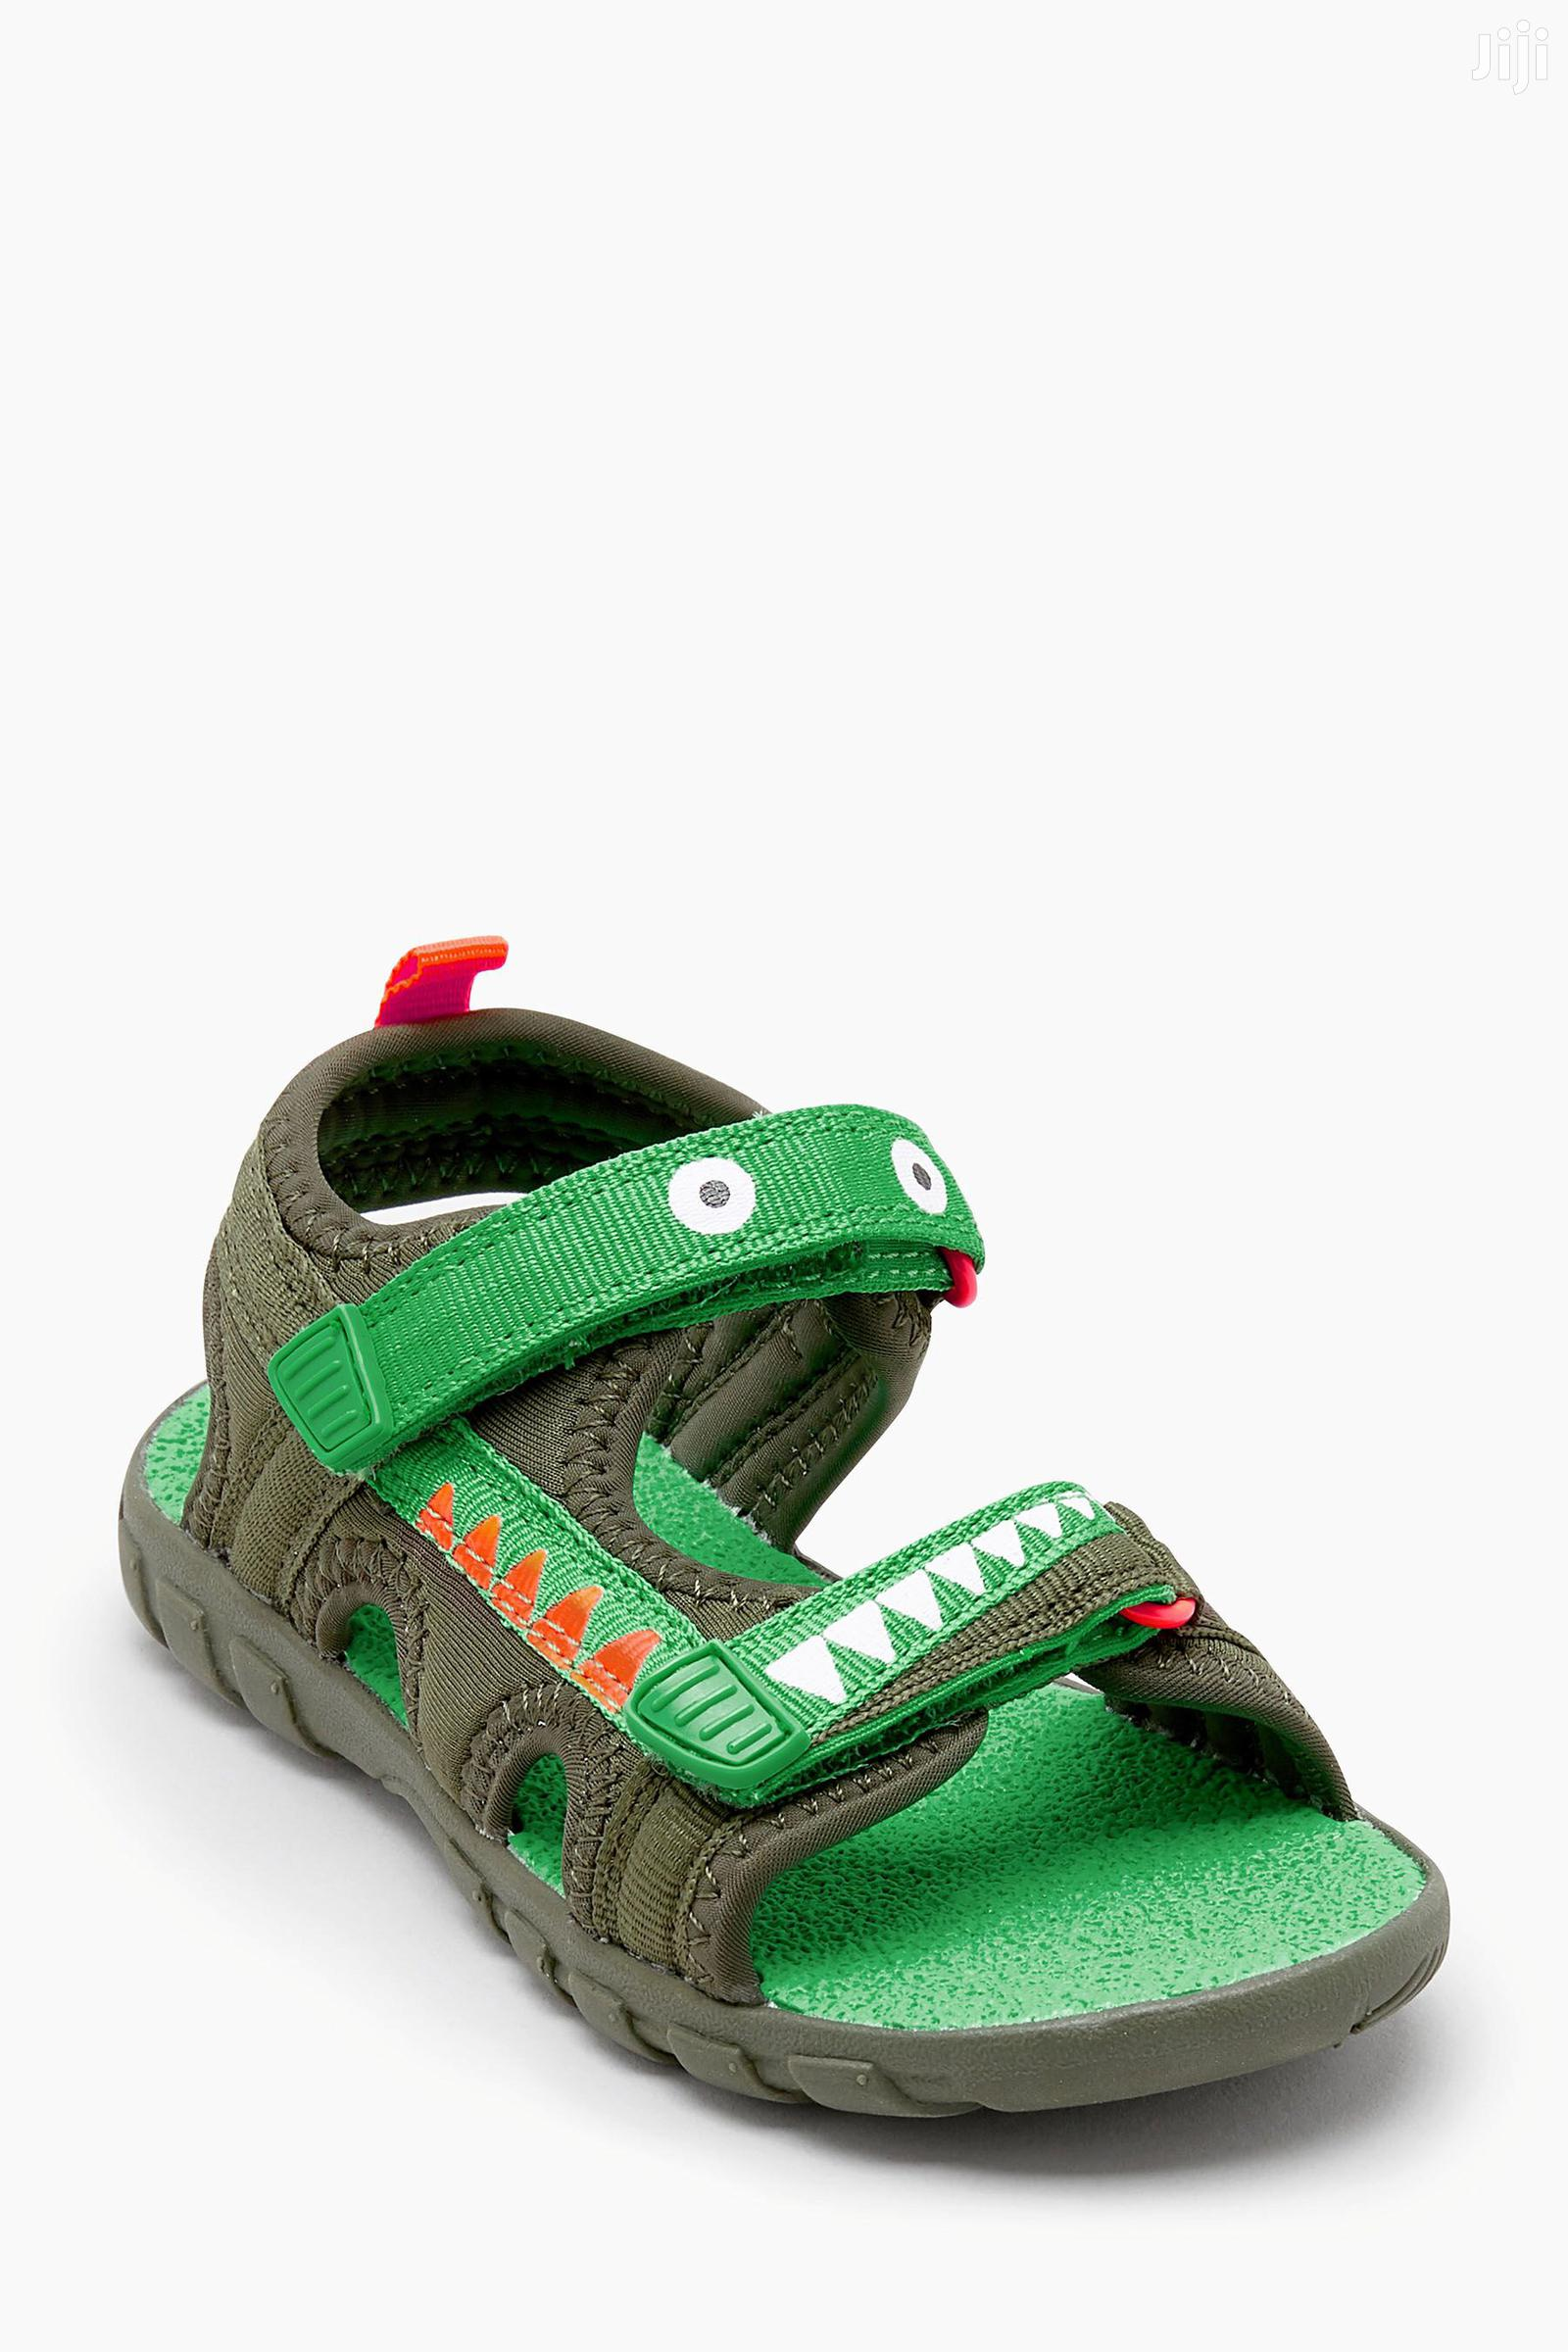 Next Toddler Sandals for Boys